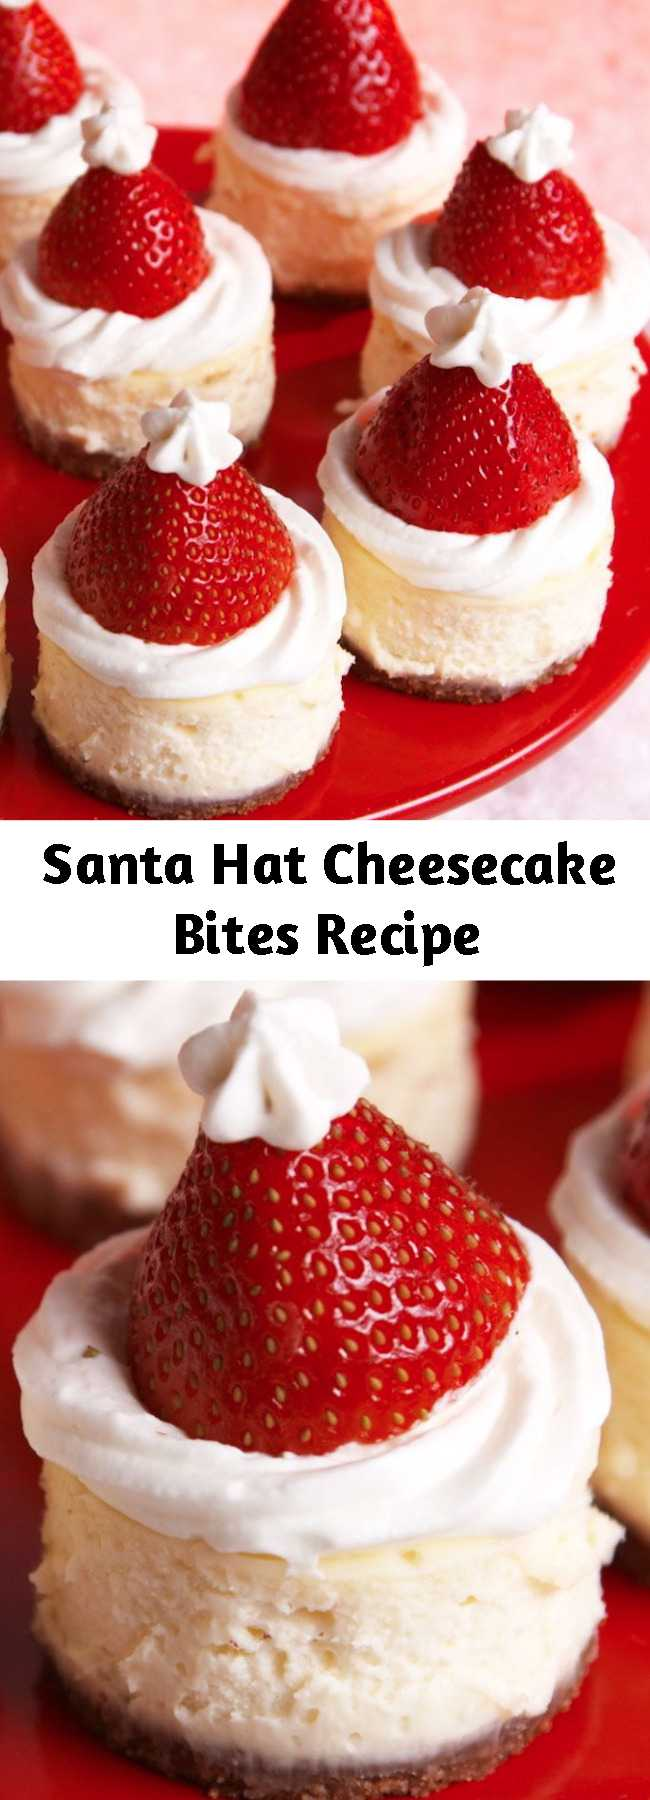 Santa Hat Cheesecake Bites Recipe - When Santa makes his list and checks it twice this year, we plan to be right at the top: these mini Santa cheesecake bites are the easiest way to show just how nice you are. #easy #recipe #cheesecake #bites #santa #hat #strawberry #hack #dessert #holiday #christmas